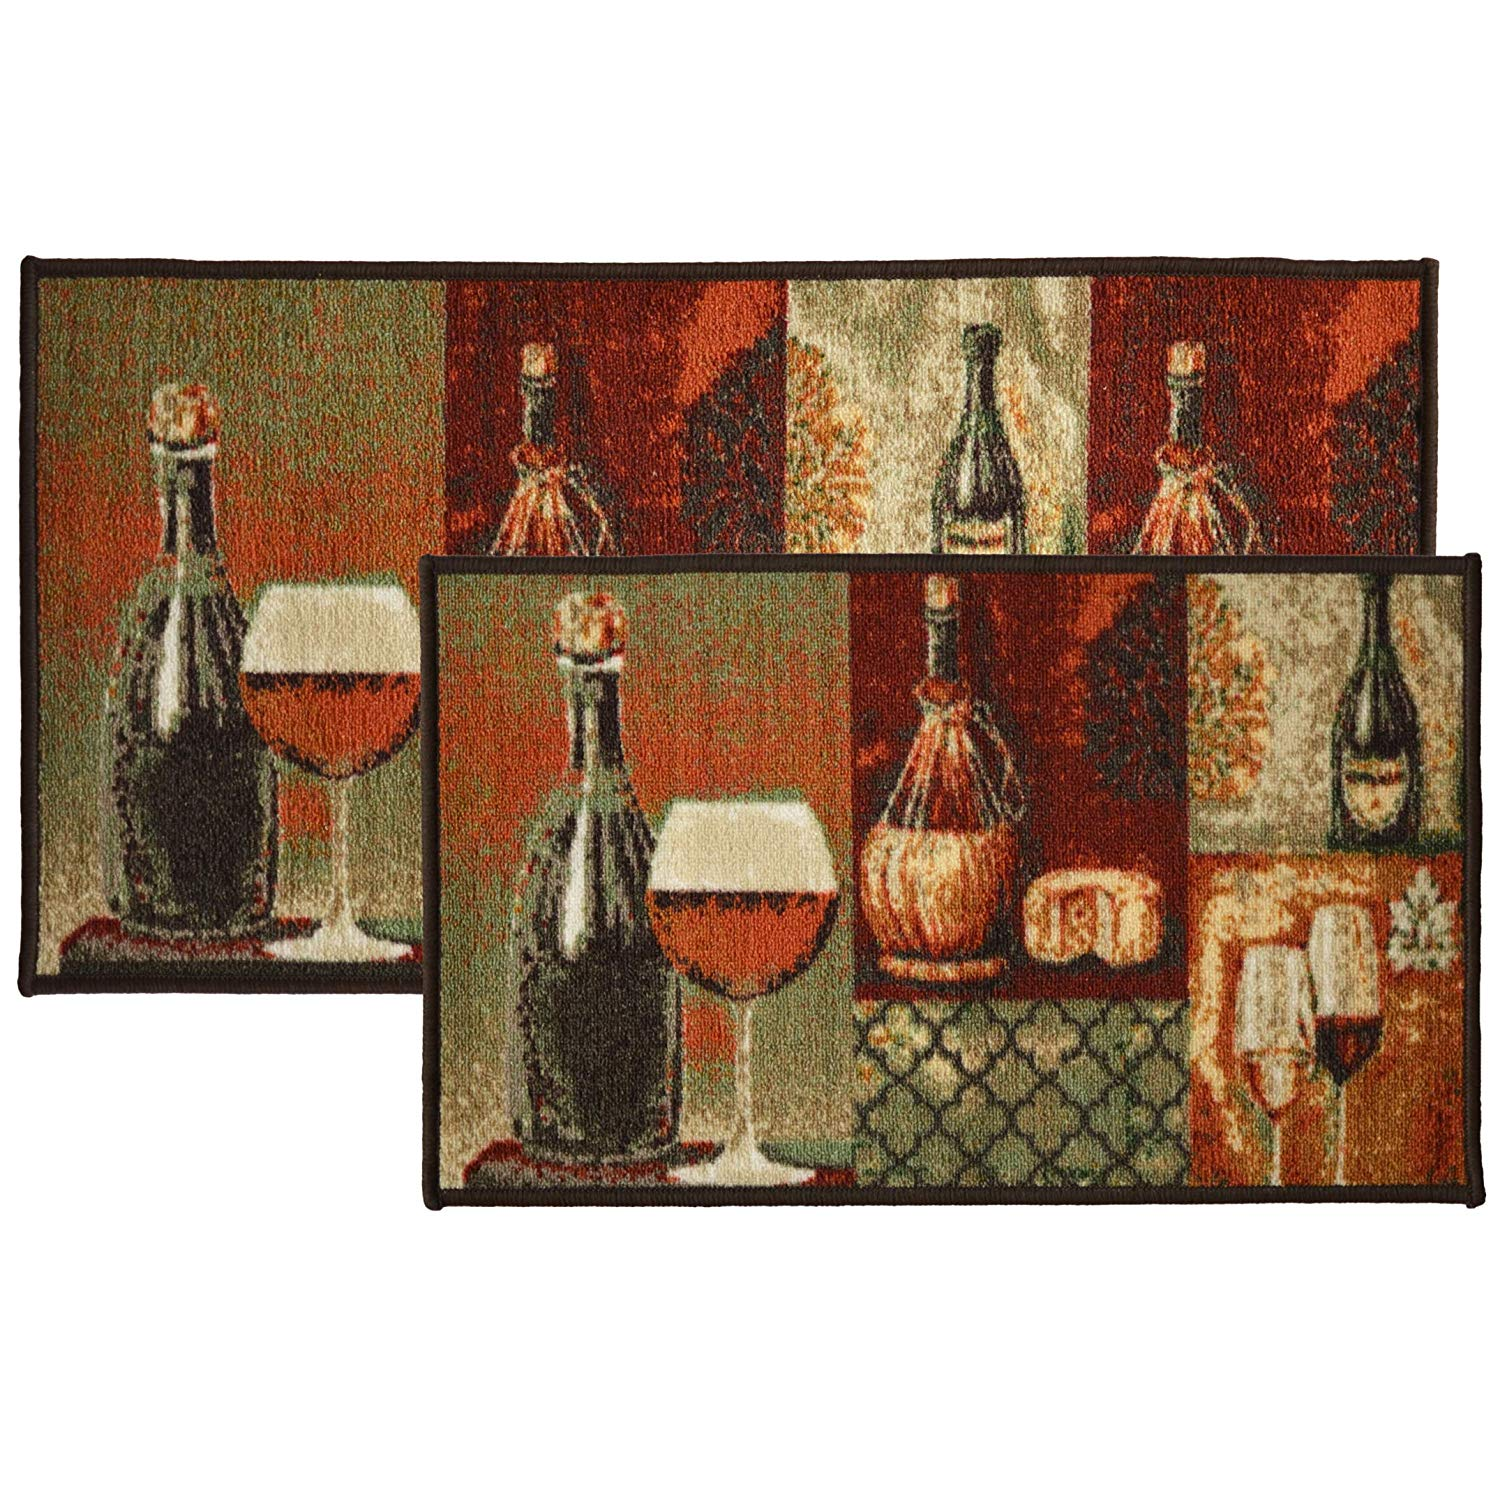 non skid latex back PRINTED NYLON KITCHEN RUG The Pecan Man WINE BOTTLES /& FRUITS ,1Piece 18x30